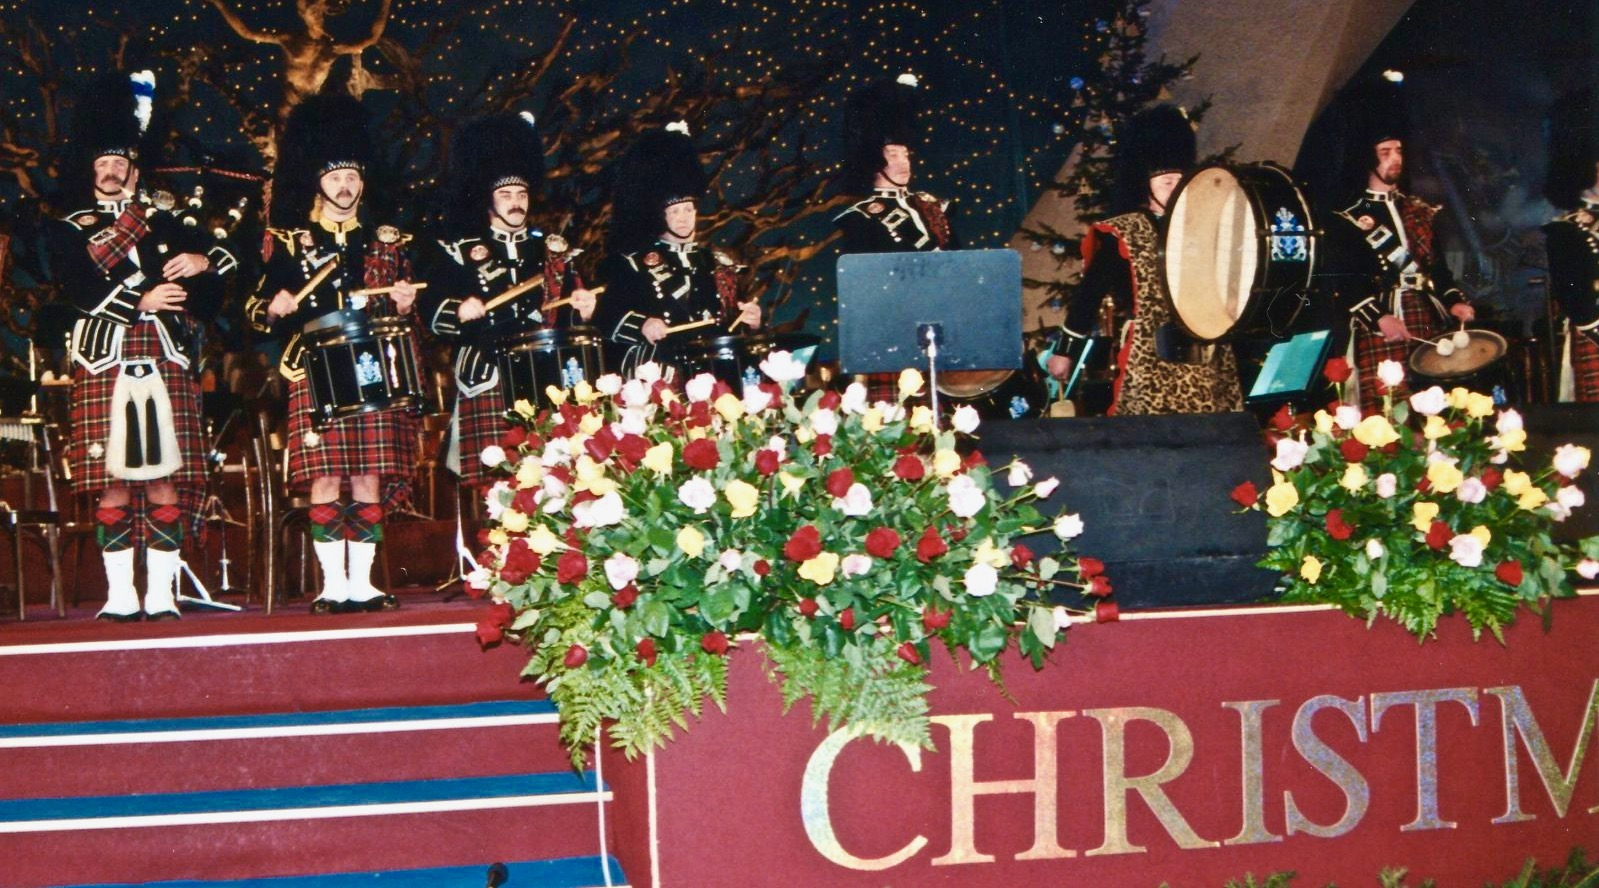 Christmas Concert at the Vatican City, Rome